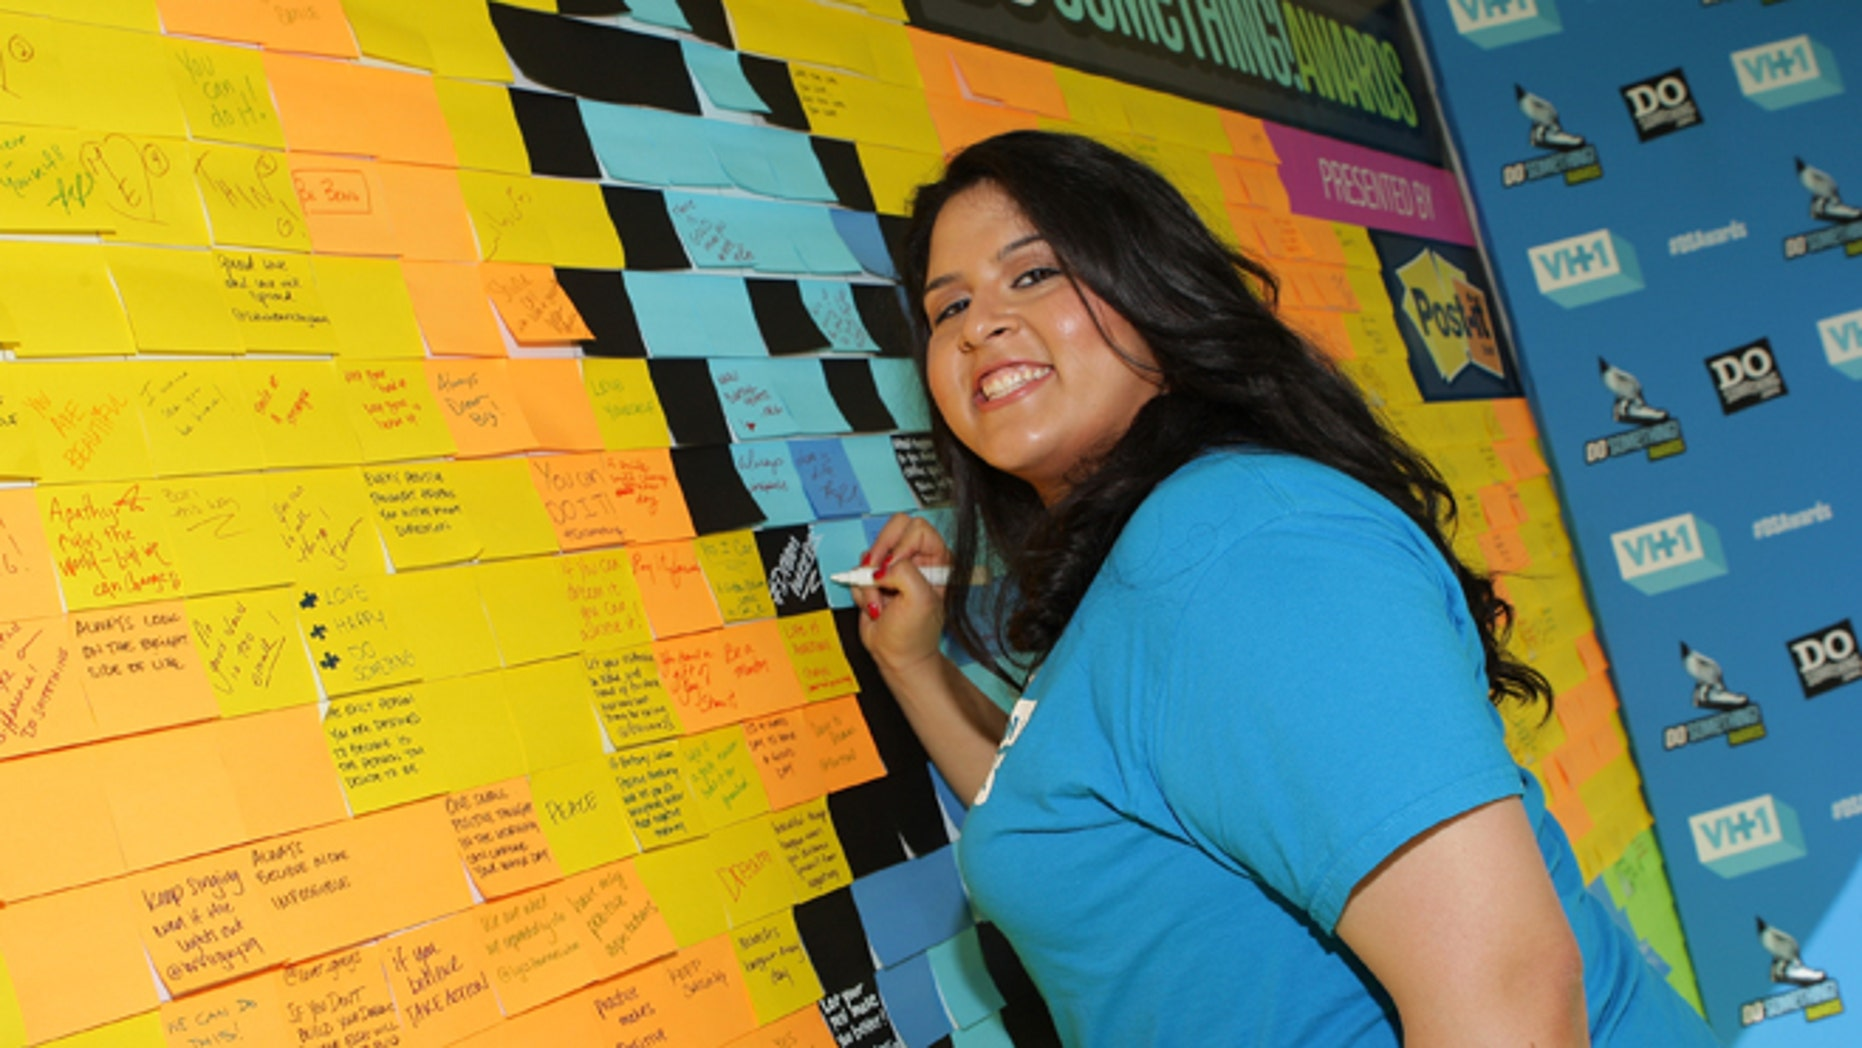 HOLLYWOOD, CA - JULY 31: Lorella Praeli of United We Dream writes messages of positivity on the Post-it Brand Wall in support of DoSomething.org at VH1's 2013 Do Something Awards at Avalon on July 31, 2013 in Hollywood, California.  (Photo by Mike Windle/Getty Images for VH1)